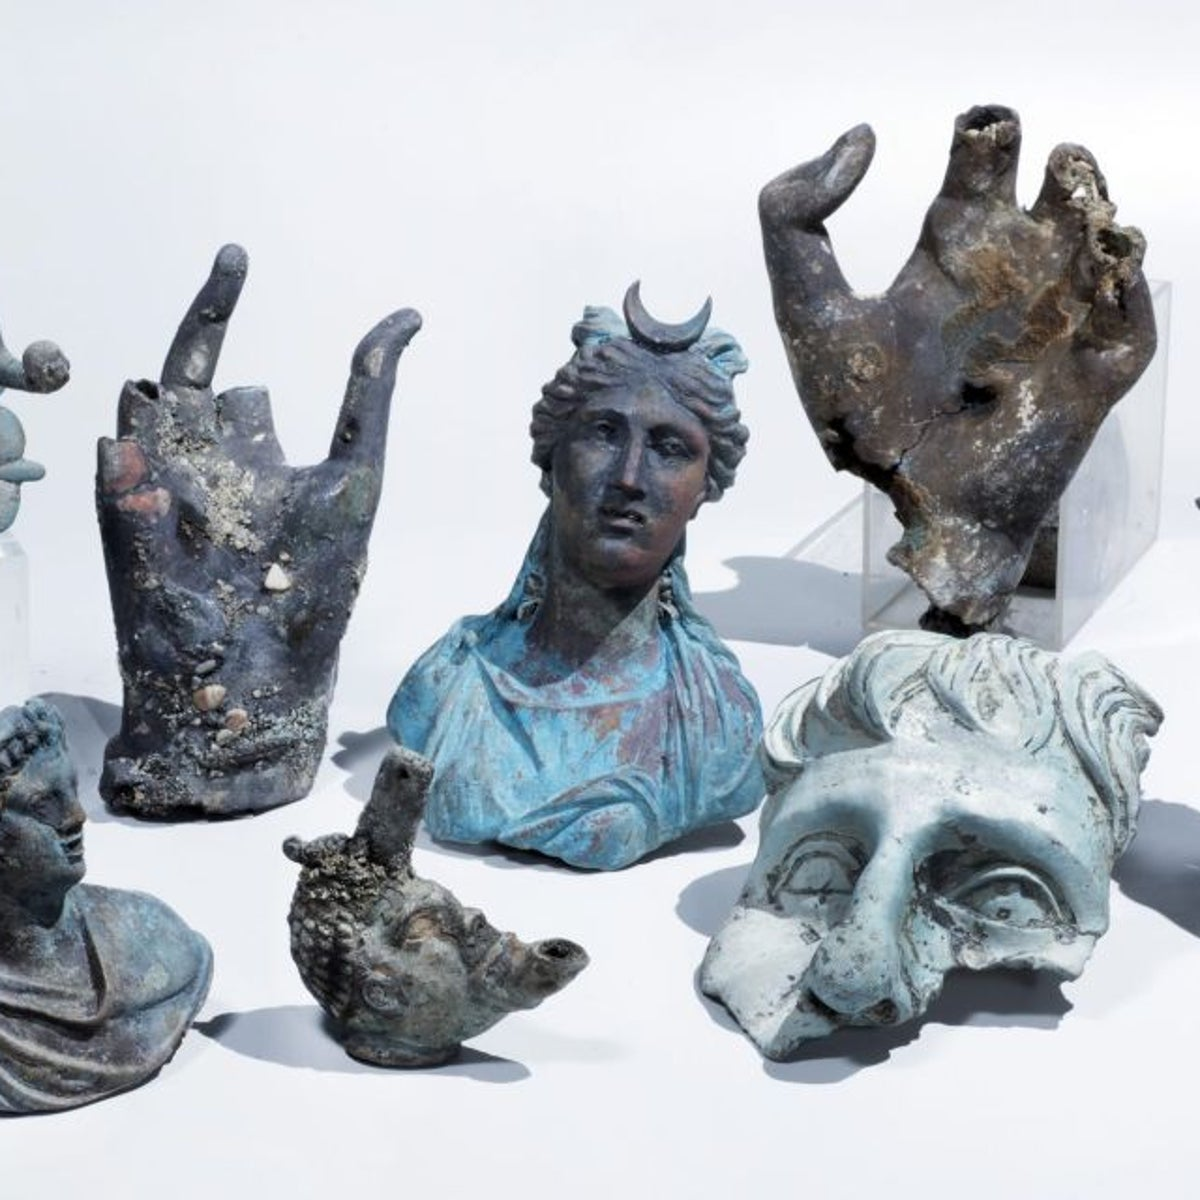 Bronze artifacts found by amateur divers off the coast of Caesarea in May, 2016, belonging to a Roman ship that sunk there some 1,600 years ago.